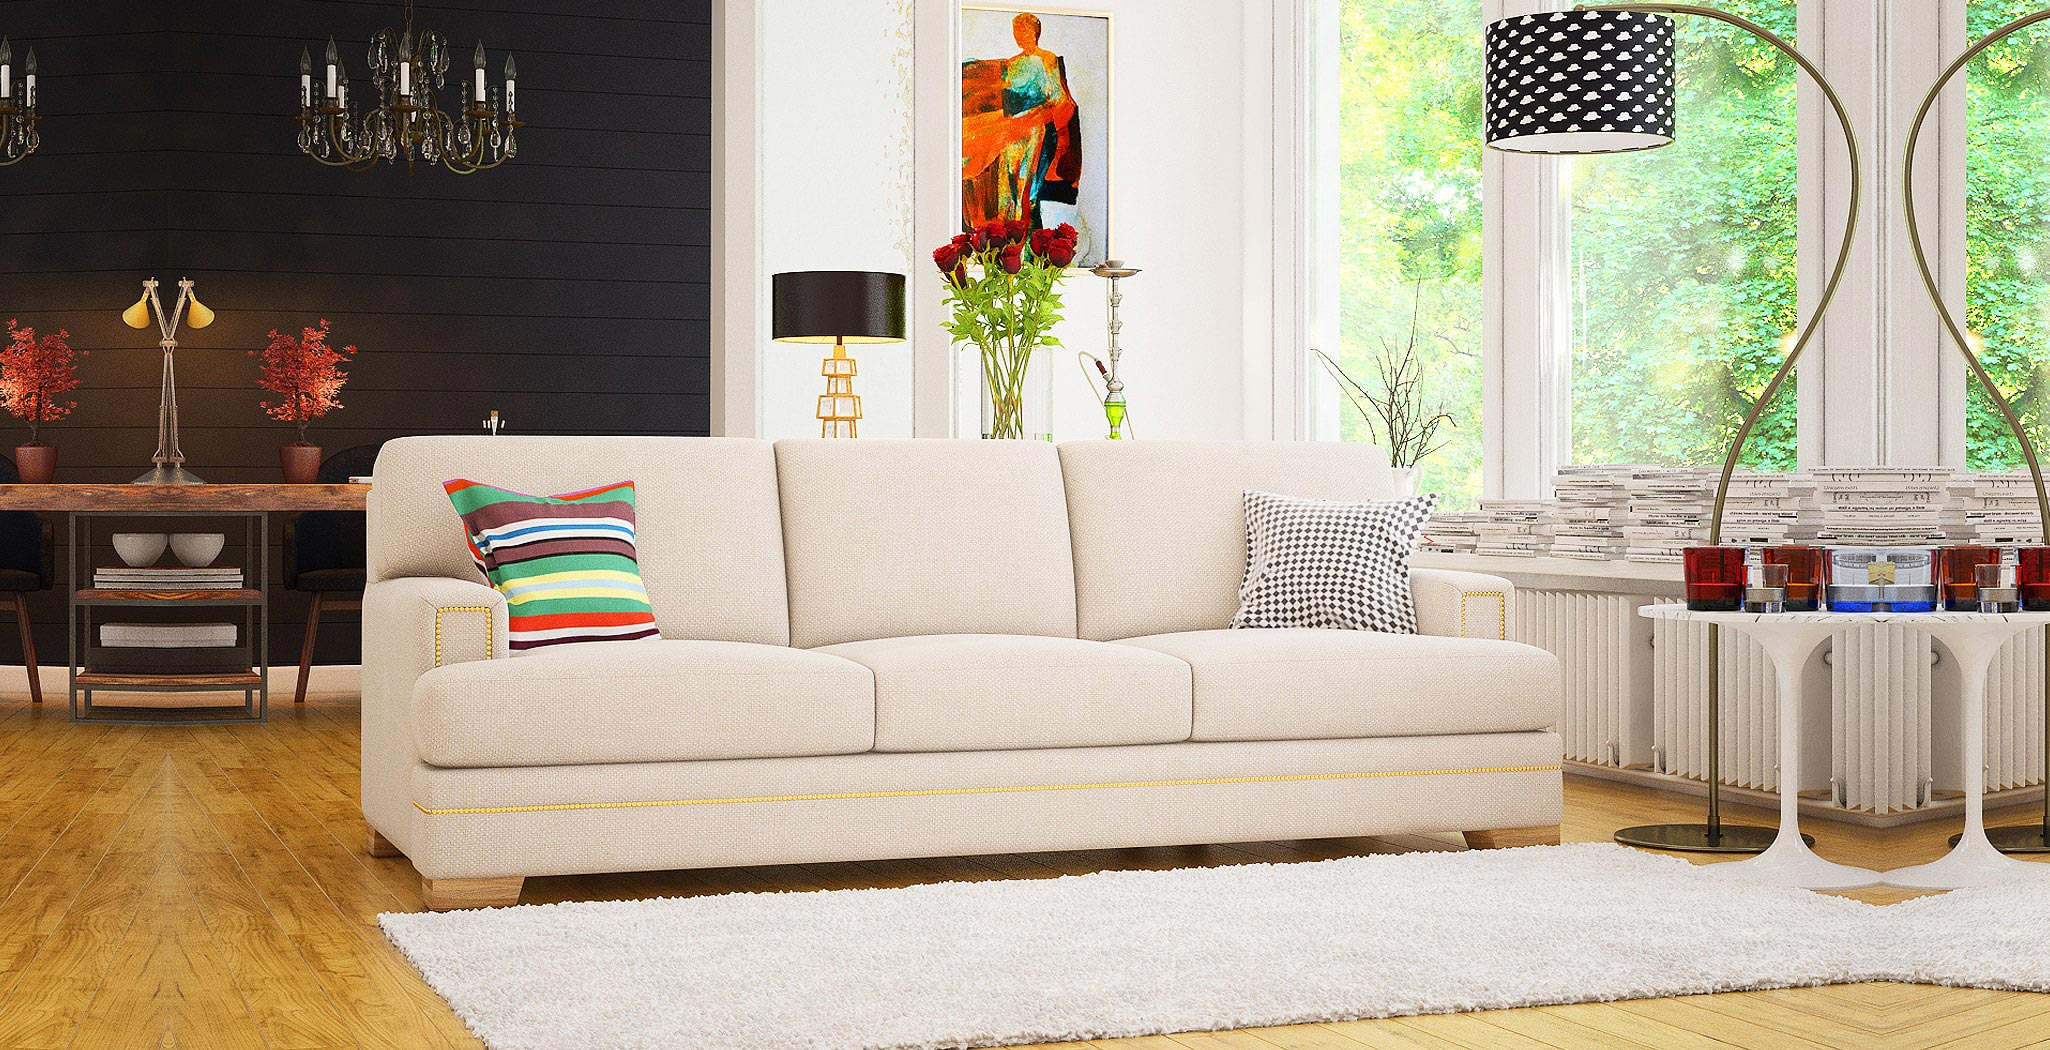 barcelona sofa furniture gallery 1